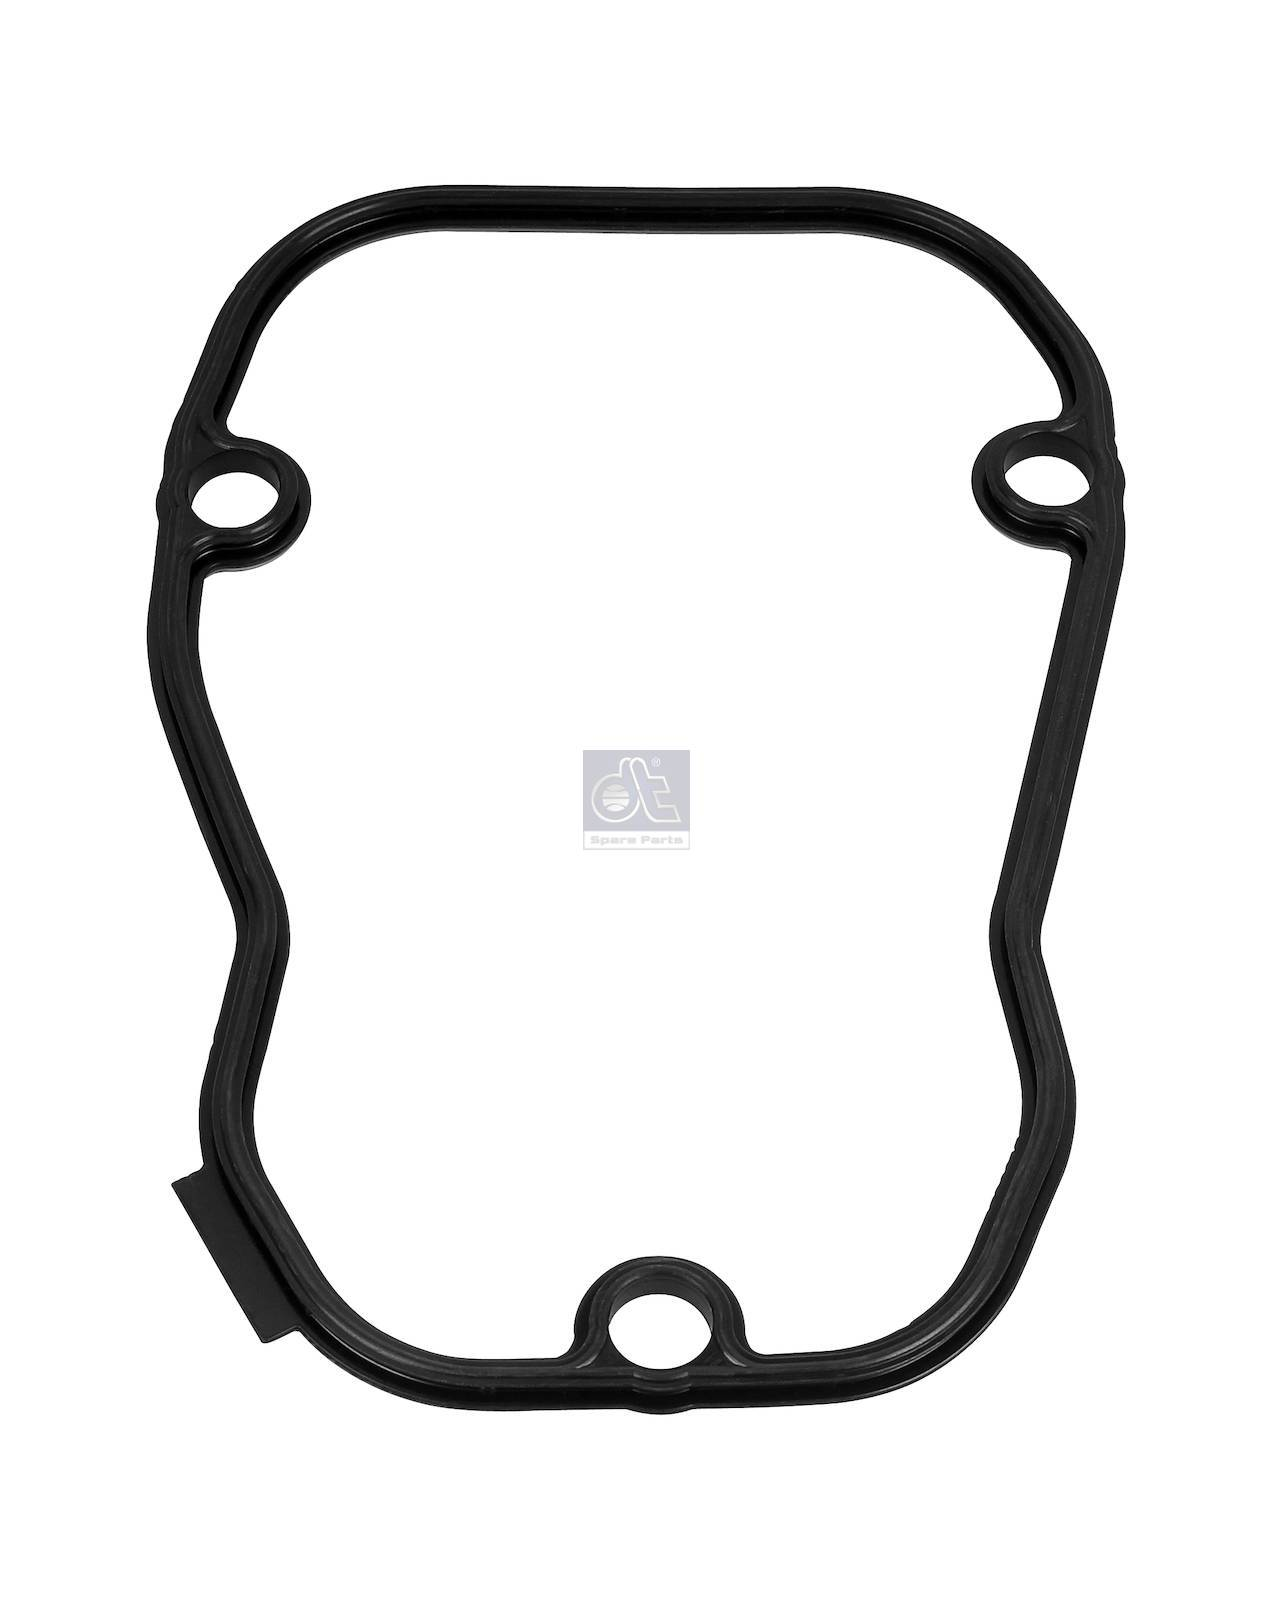 Valve cover gasket, upper